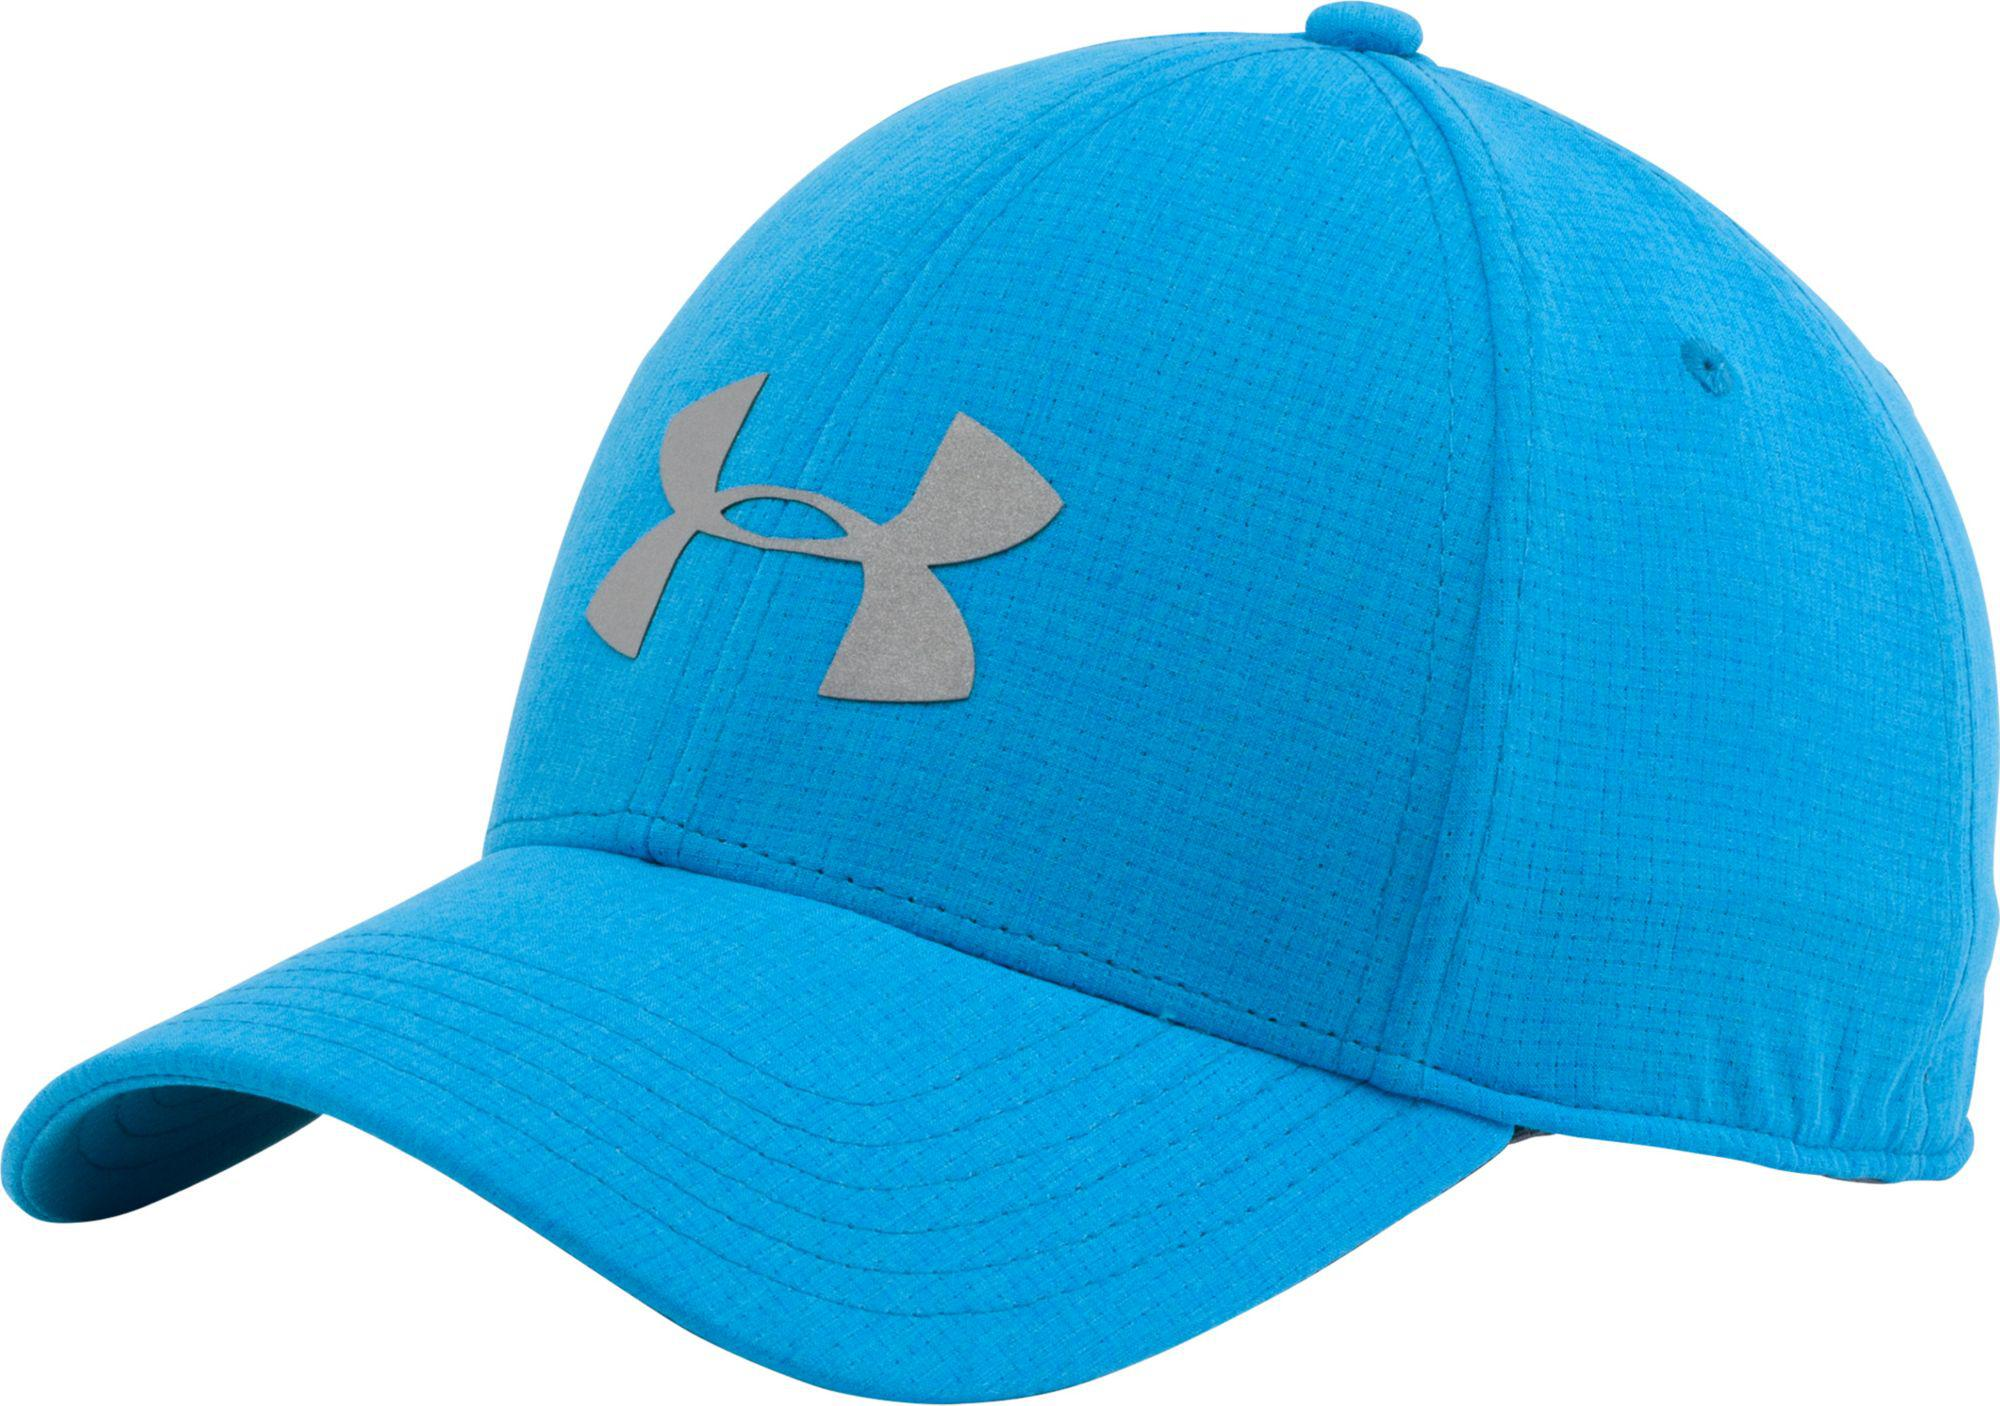 52792e26b3d Lyst - Under Armour Coolswitch Training Hat in Blue for Men